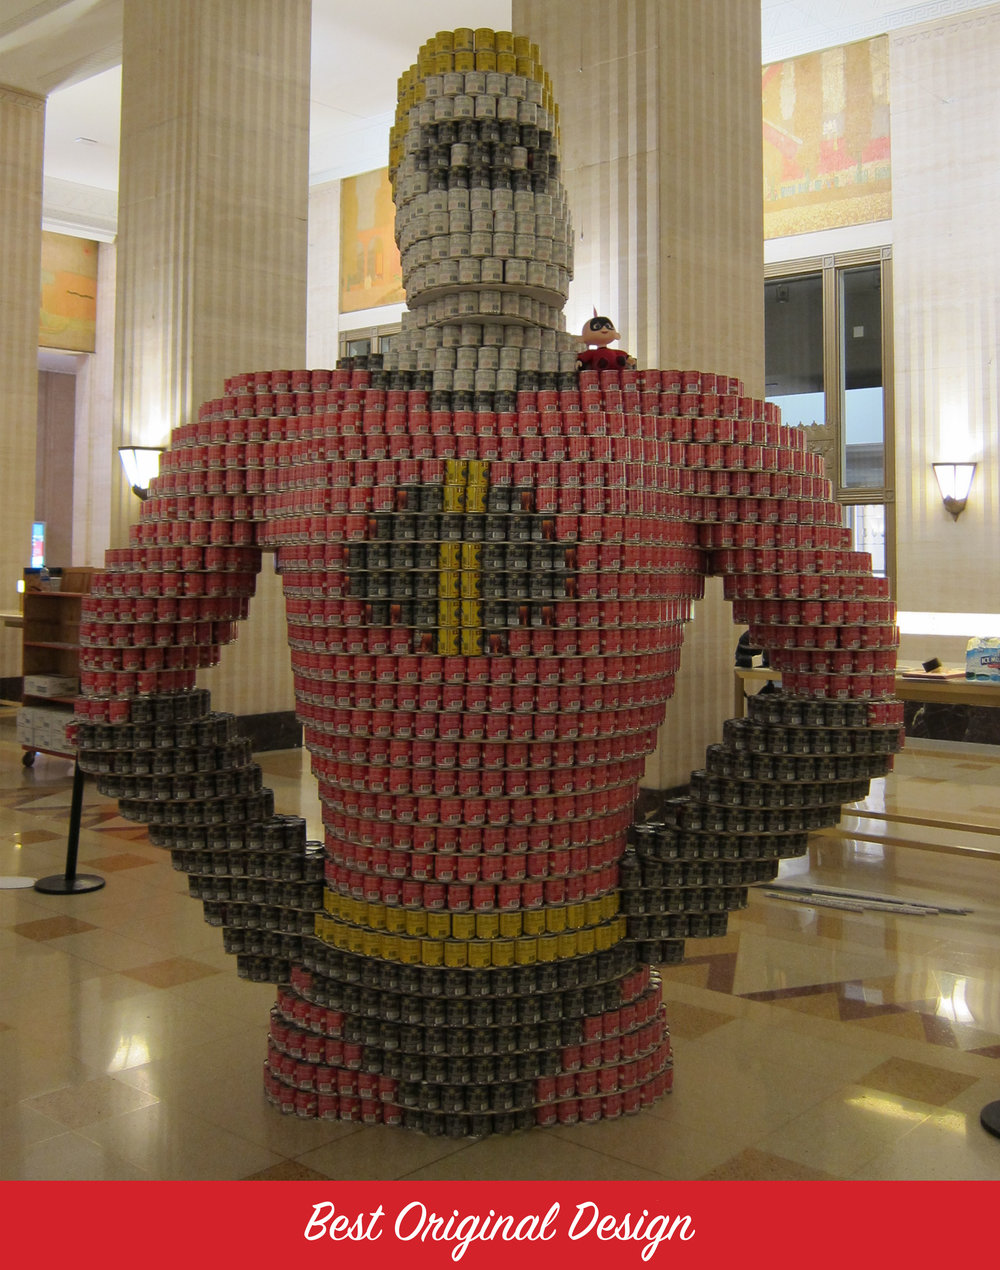 The Incredible CANs